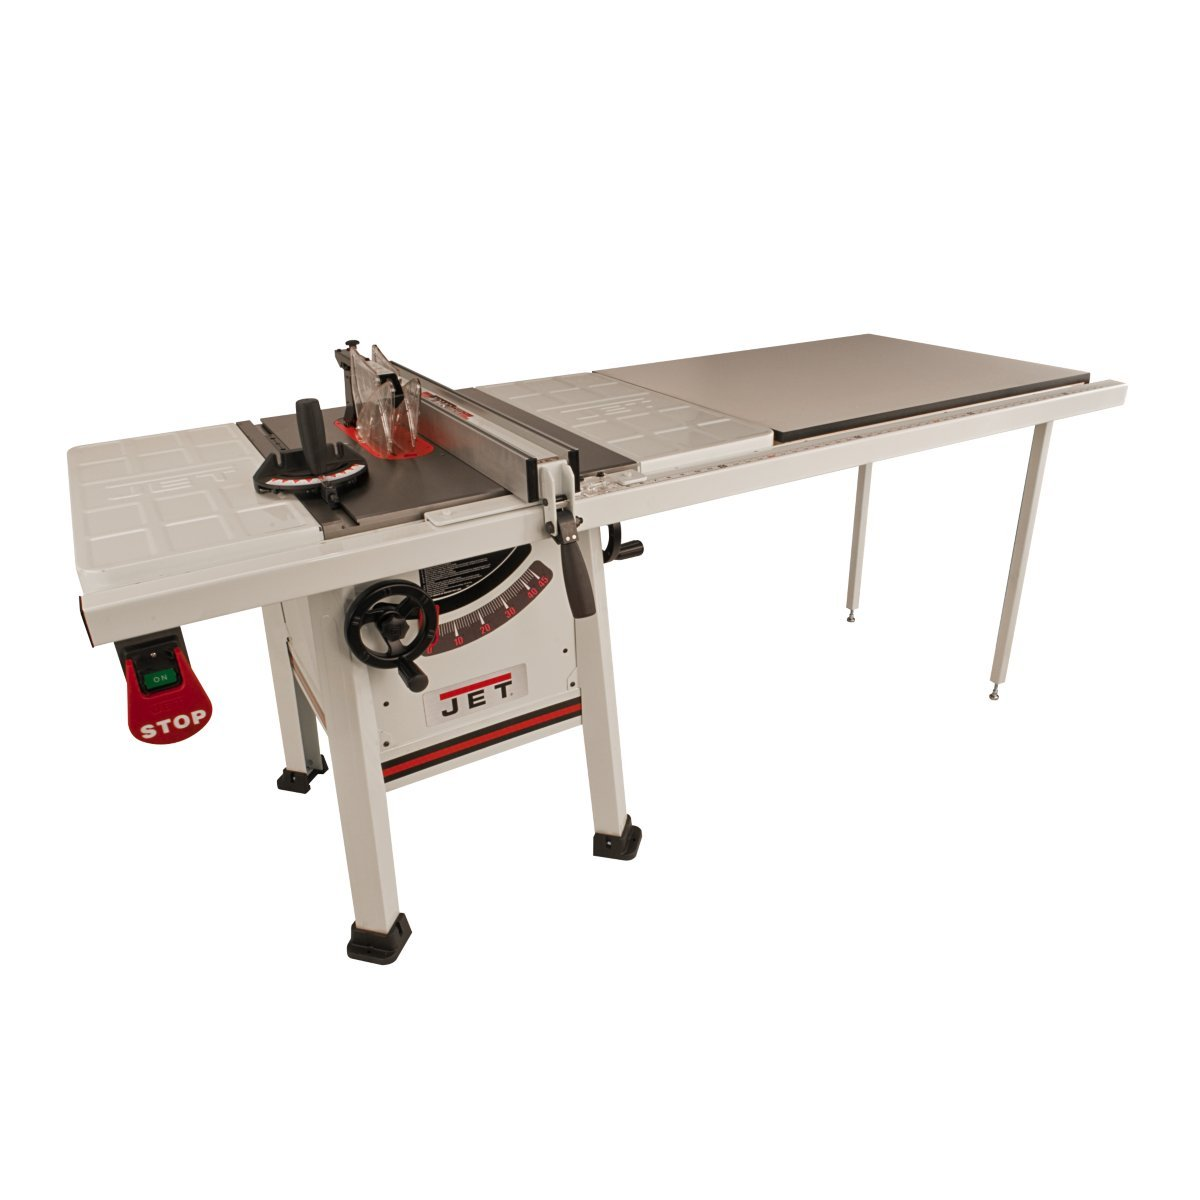 Jet 708493K JPS-10TS, 10-inch Proshop Tablesaw with 52-inch Fence, Steel Wings and With Riving Knife